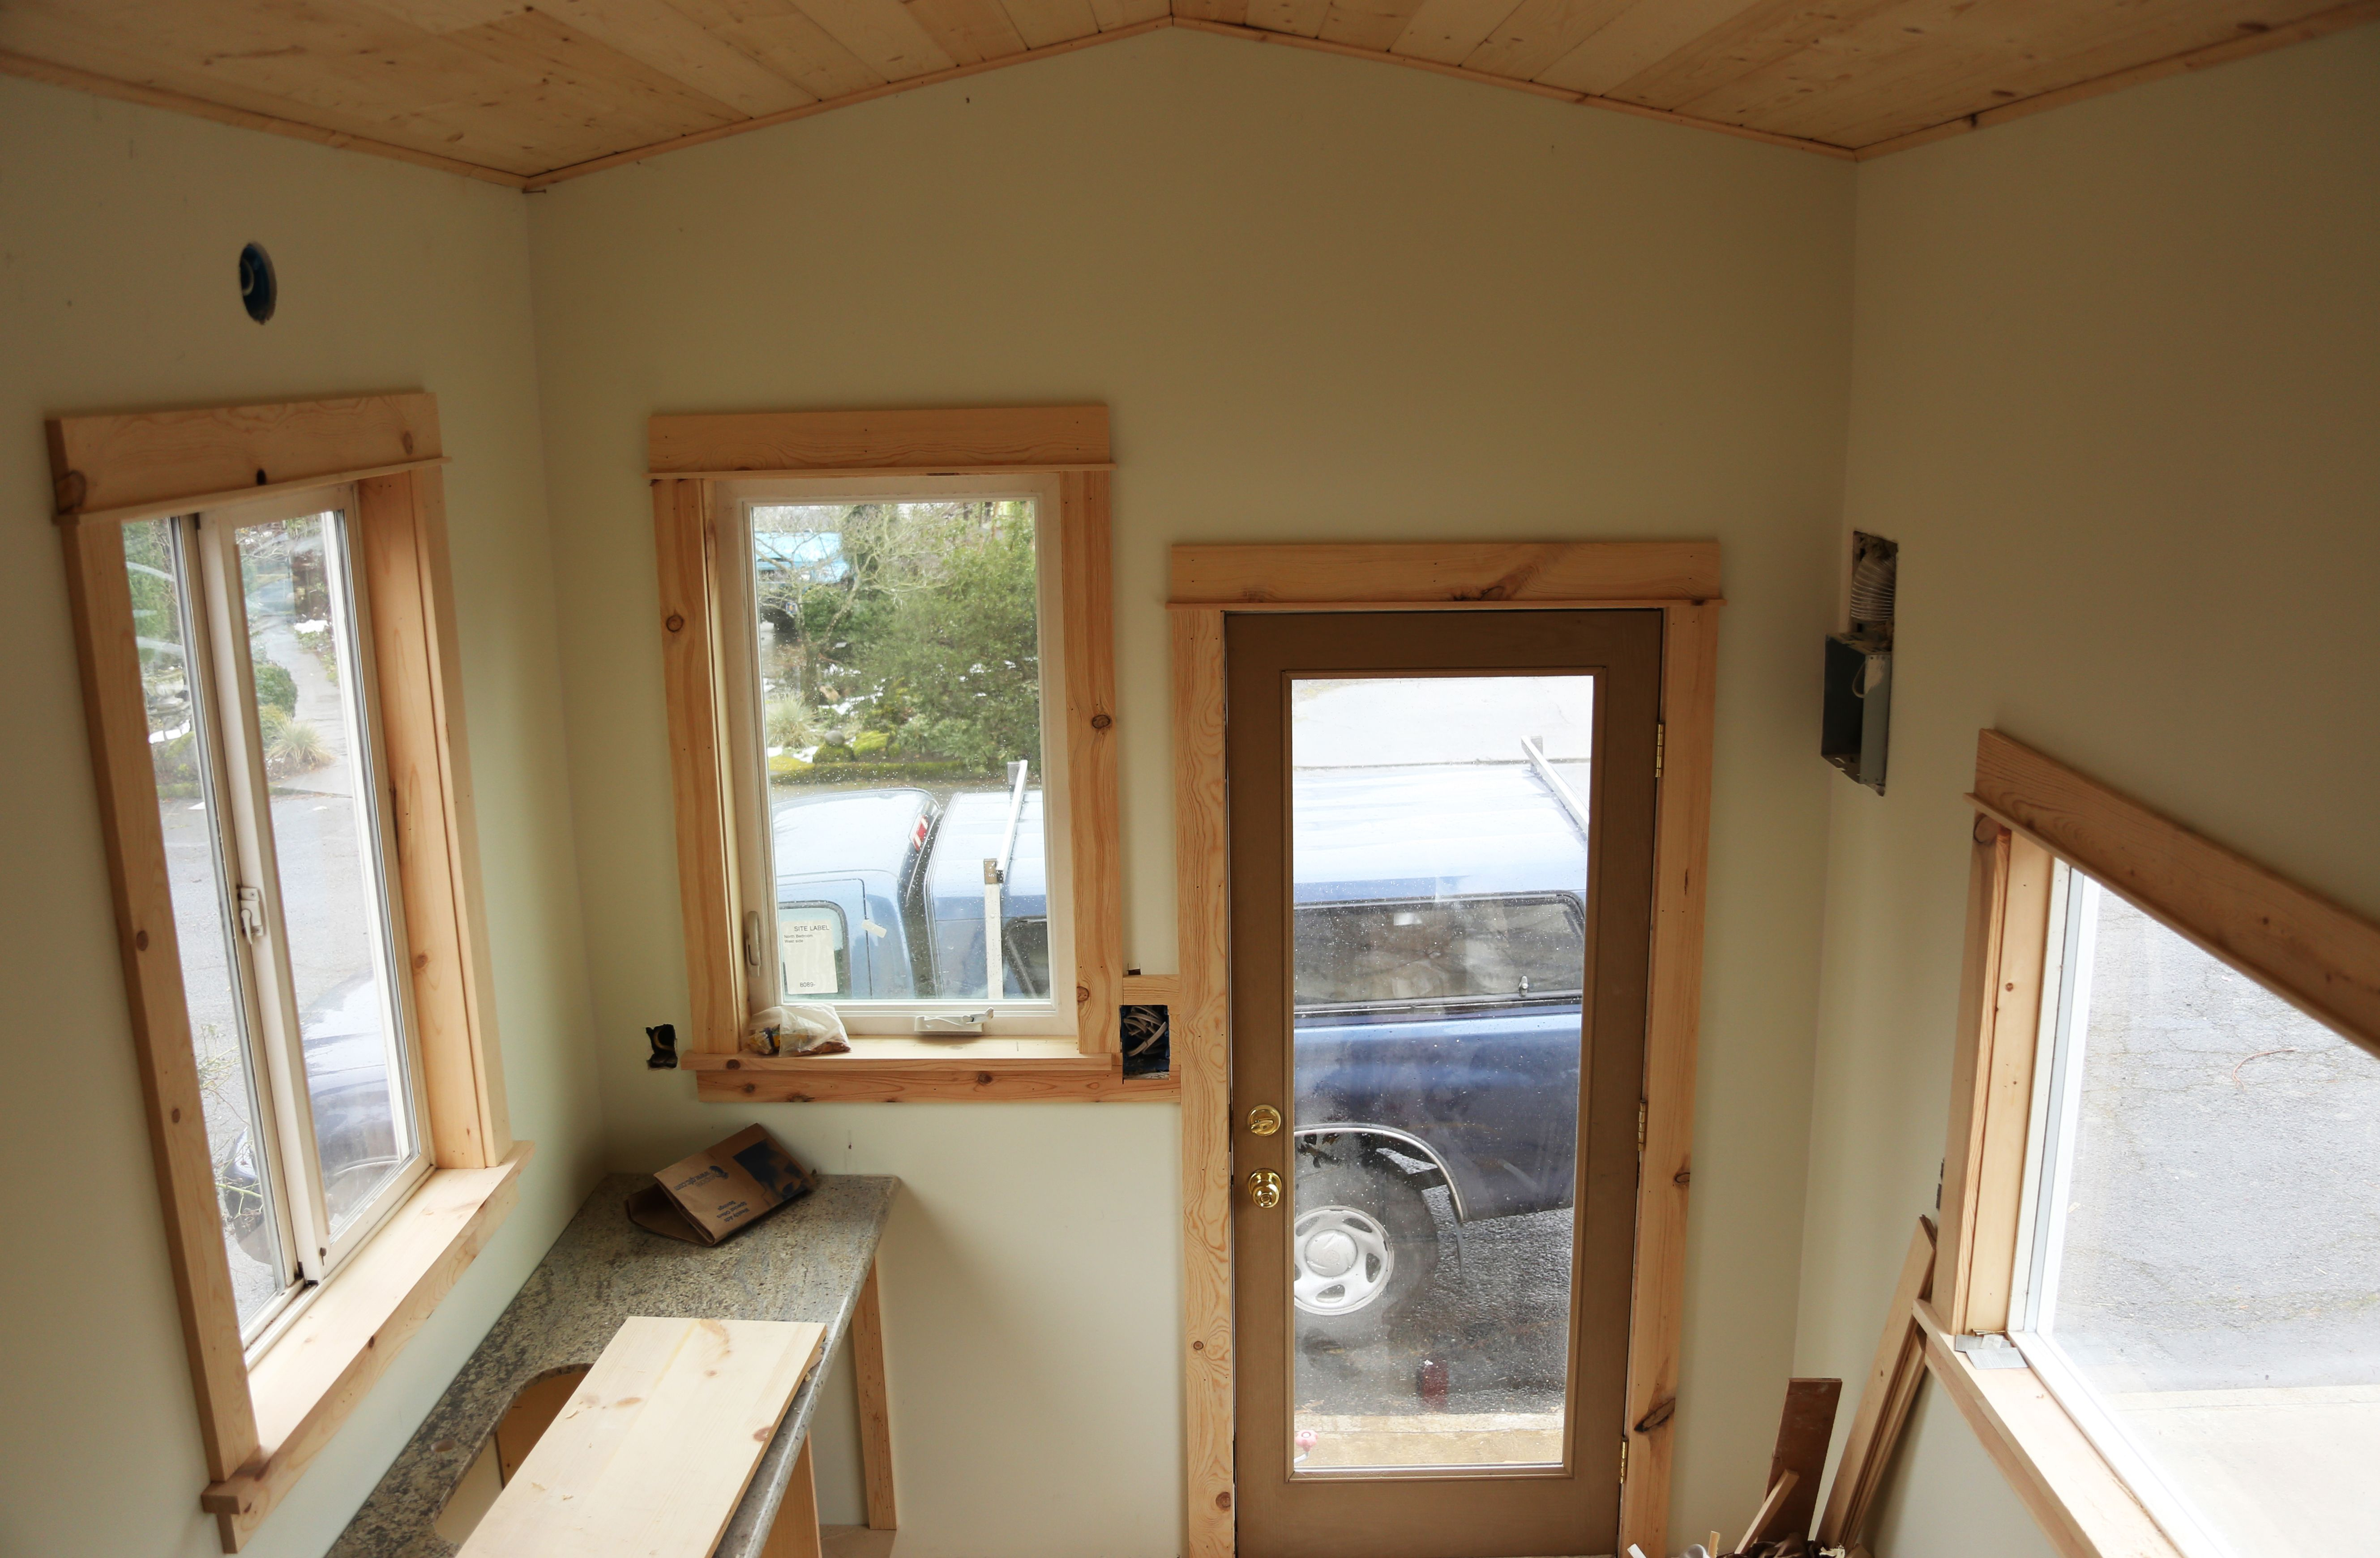 Rustic window trim styles - 1000 Images About Iny House